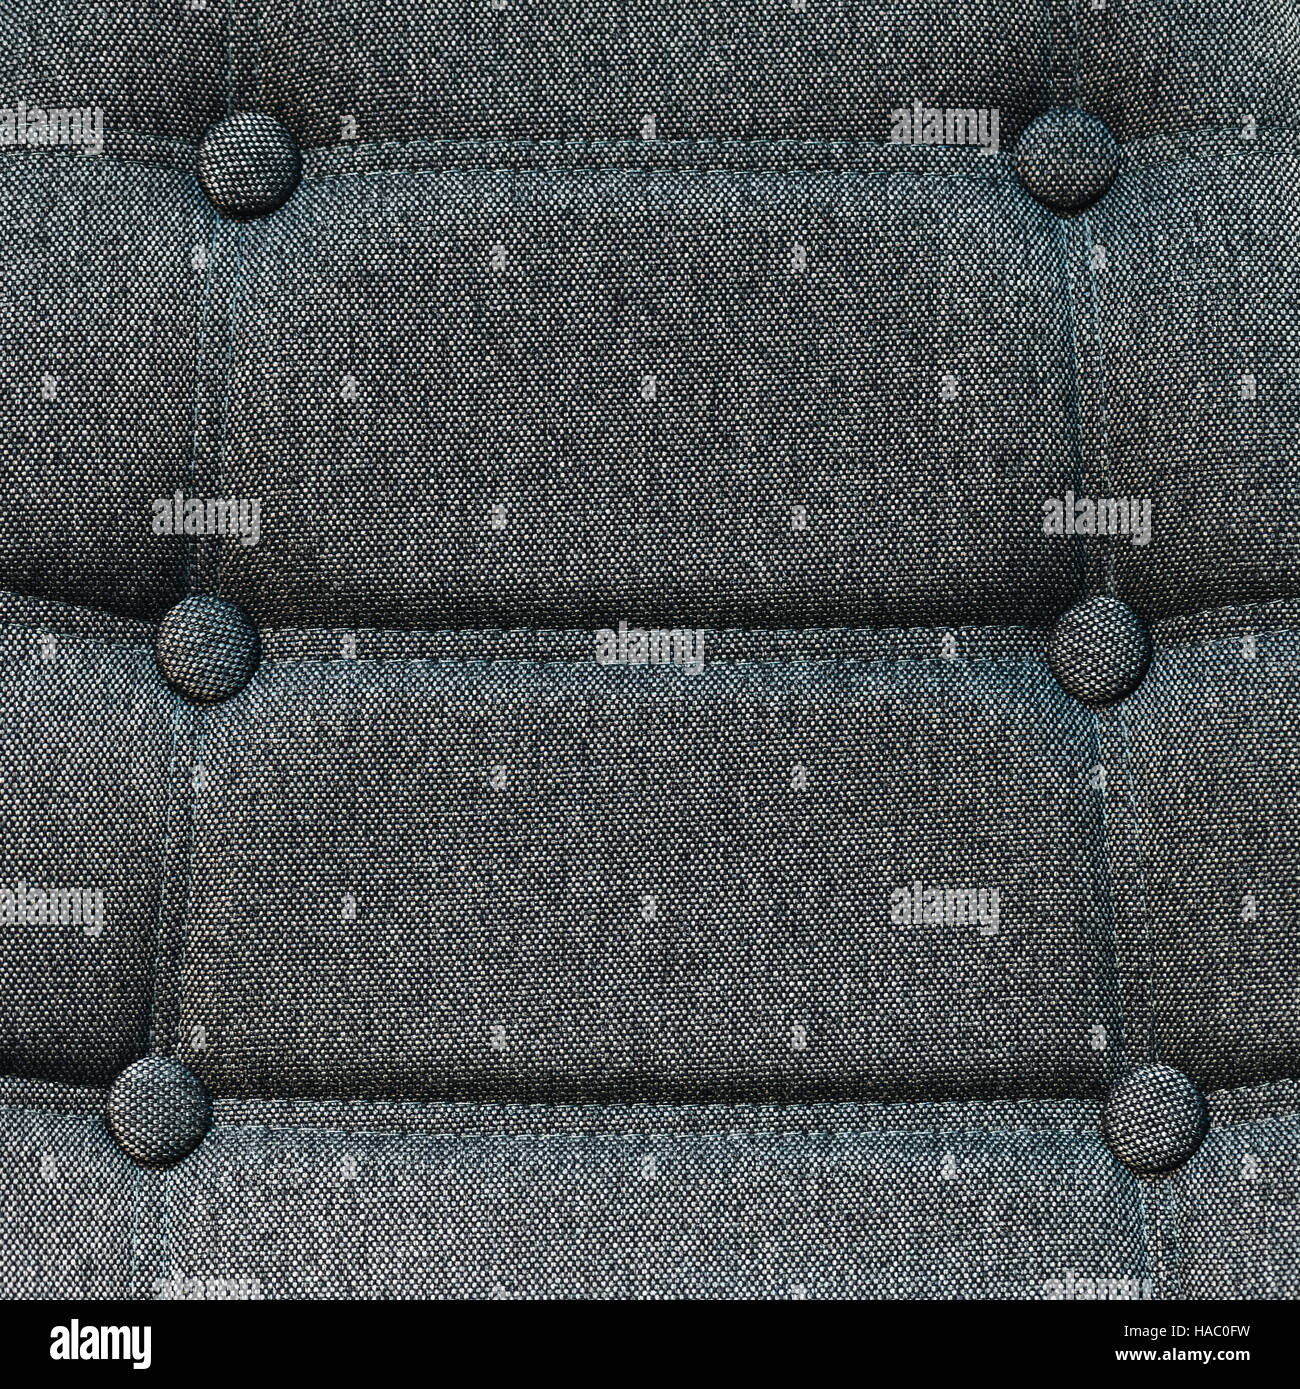 Buttoned chair back support detail, gray fiber material texture - Stock Image